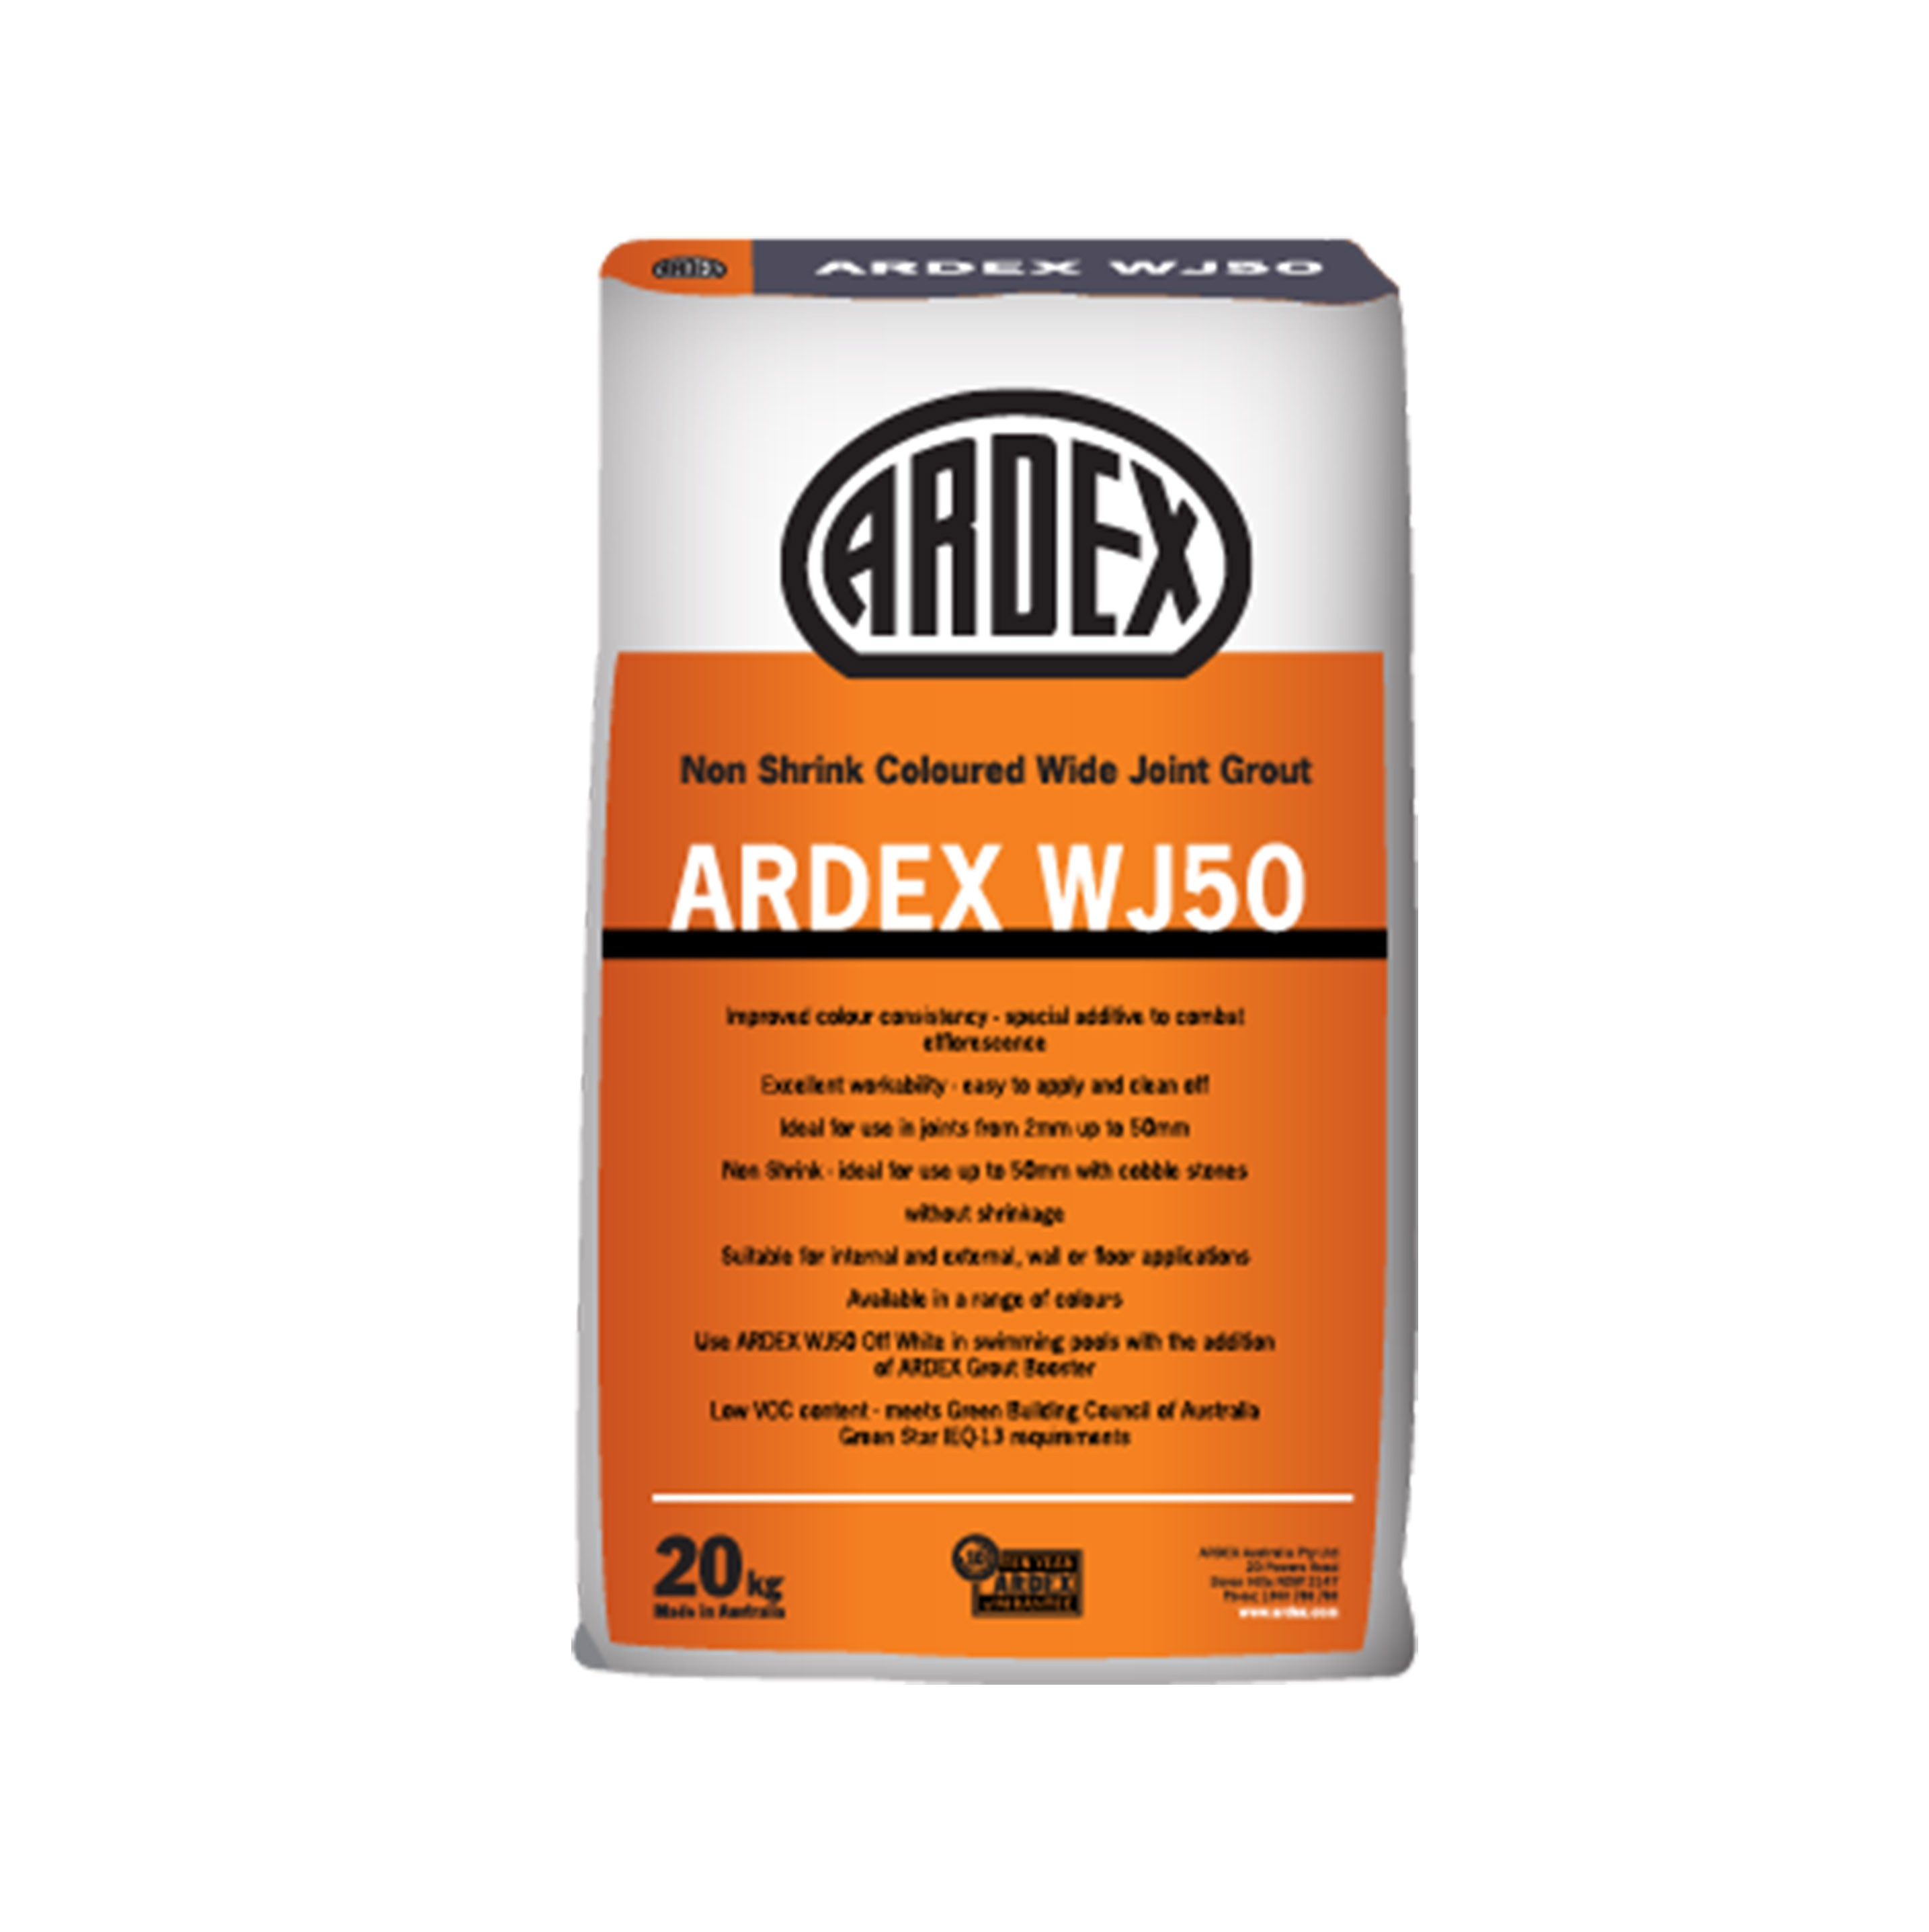 Install-Products-Photos Fixing-Products Gallery ARDEX-WJ50-Gallery